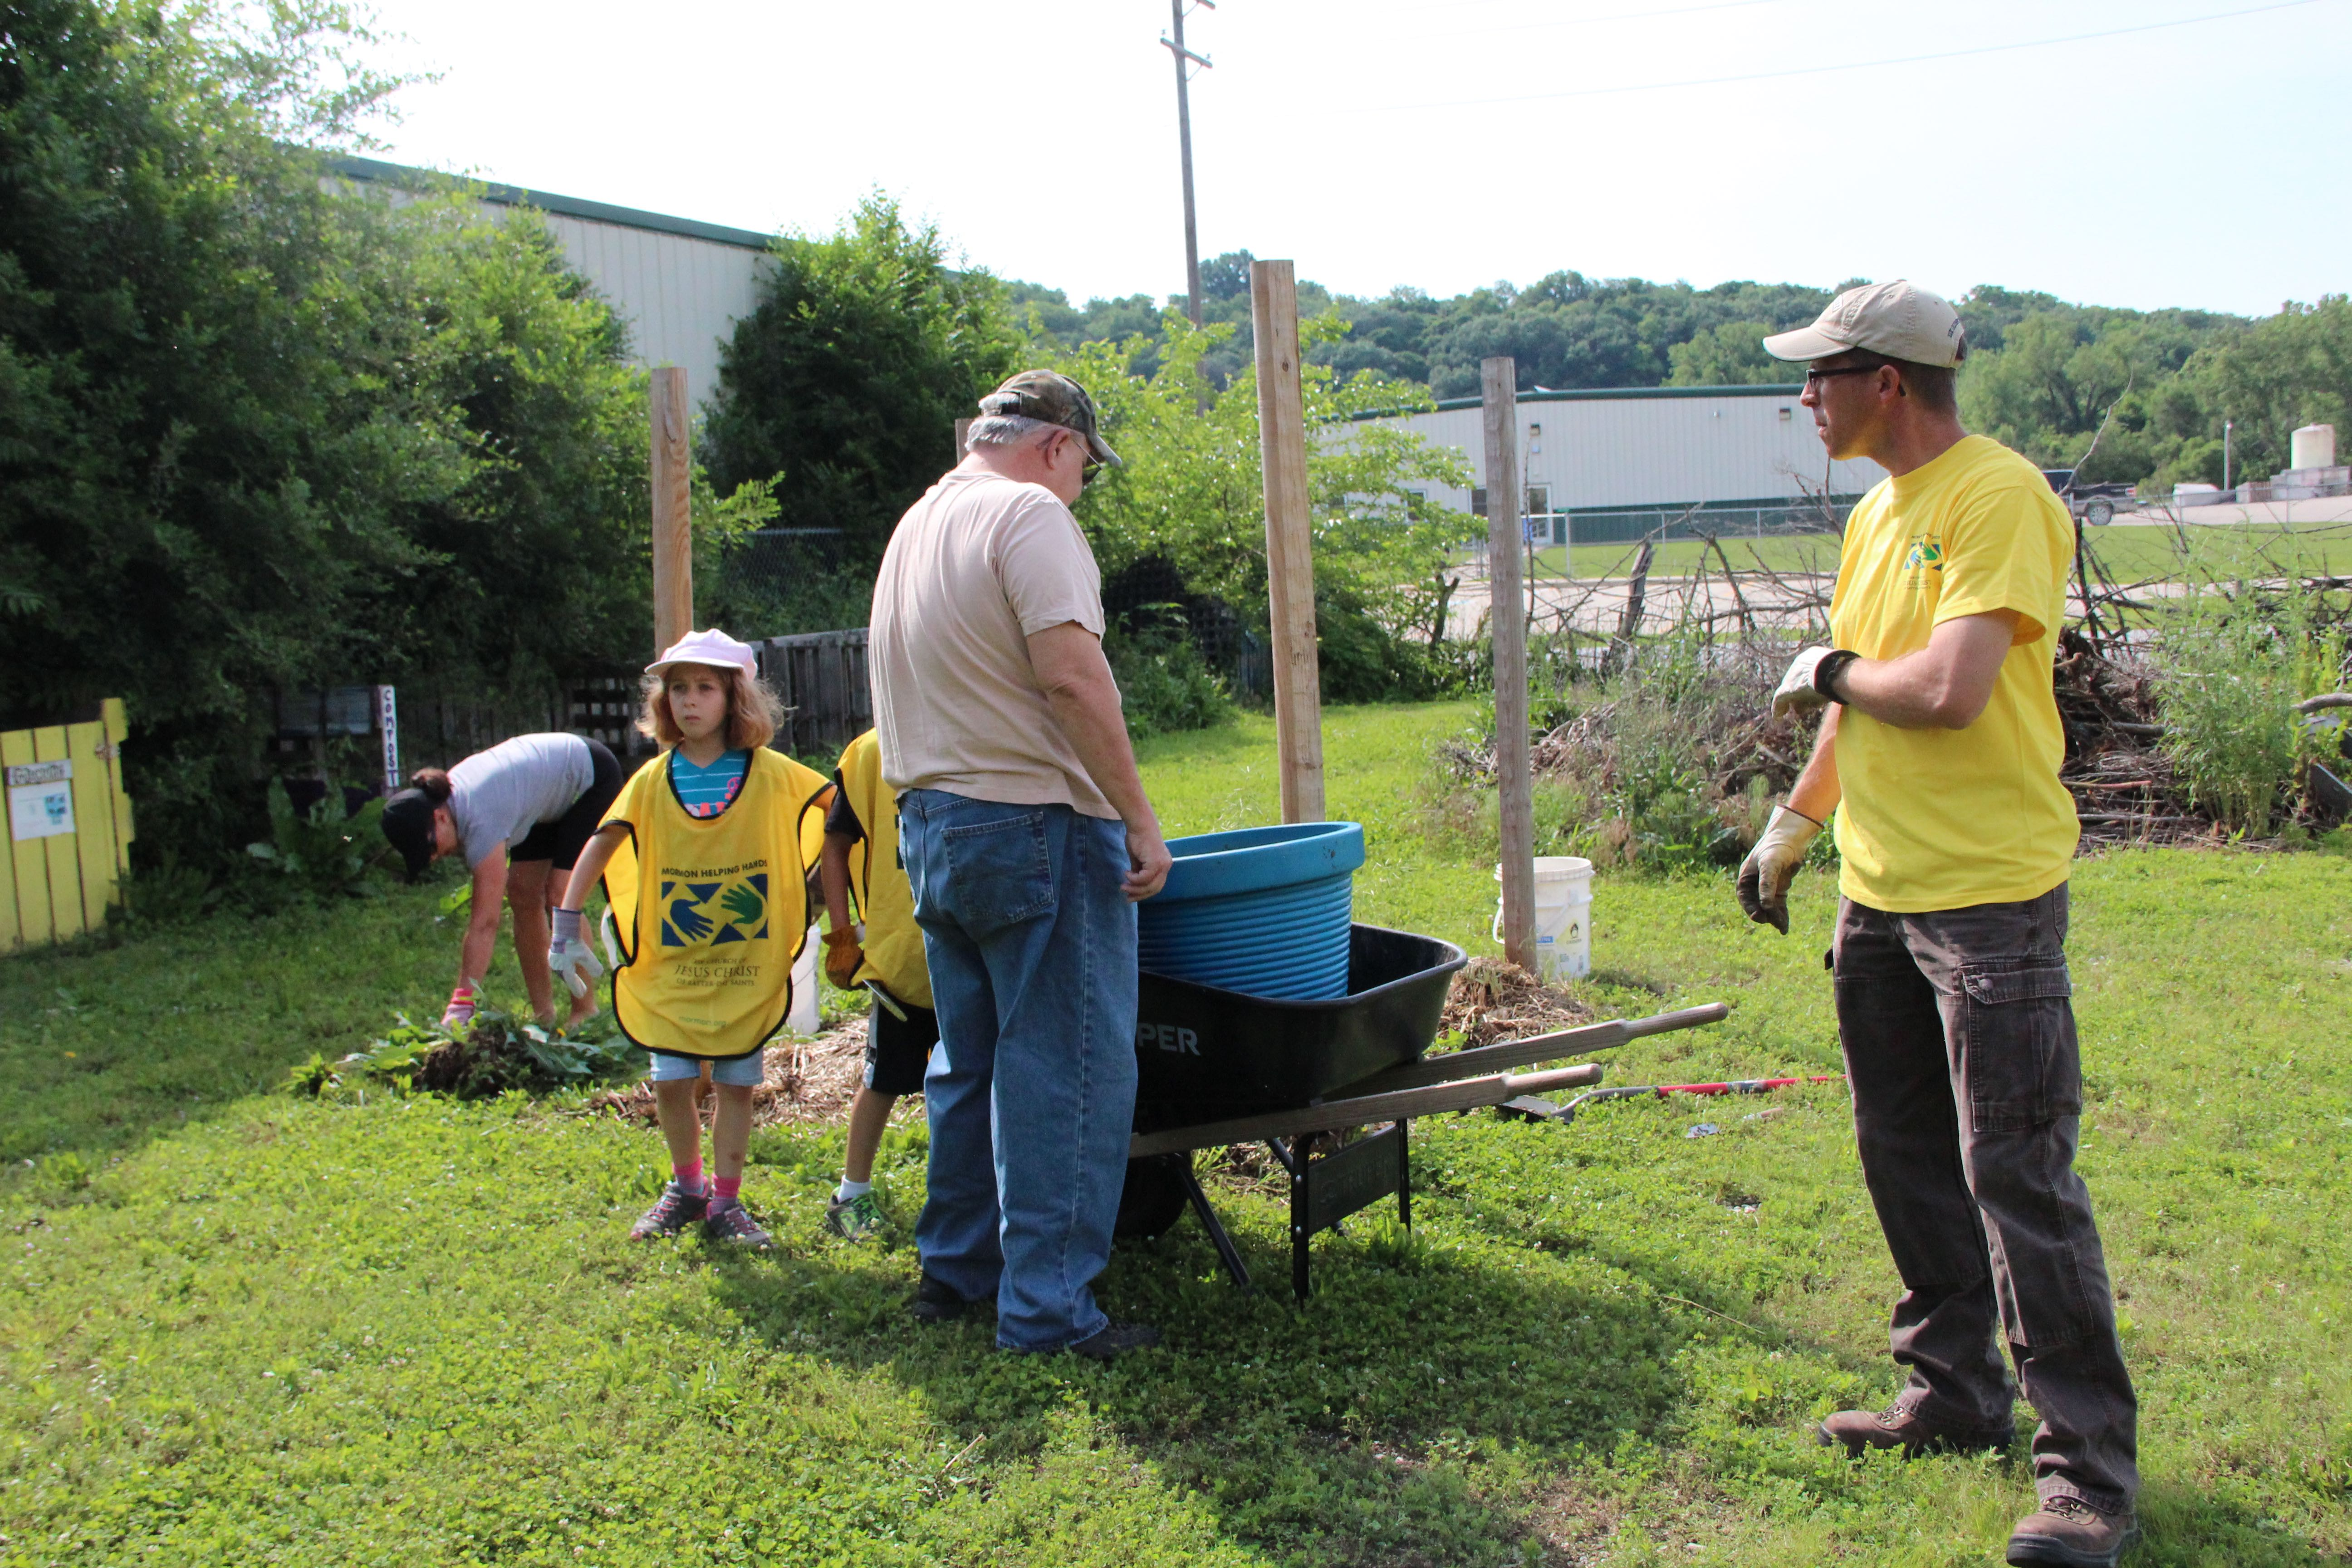 Serving in Hannibal, MO